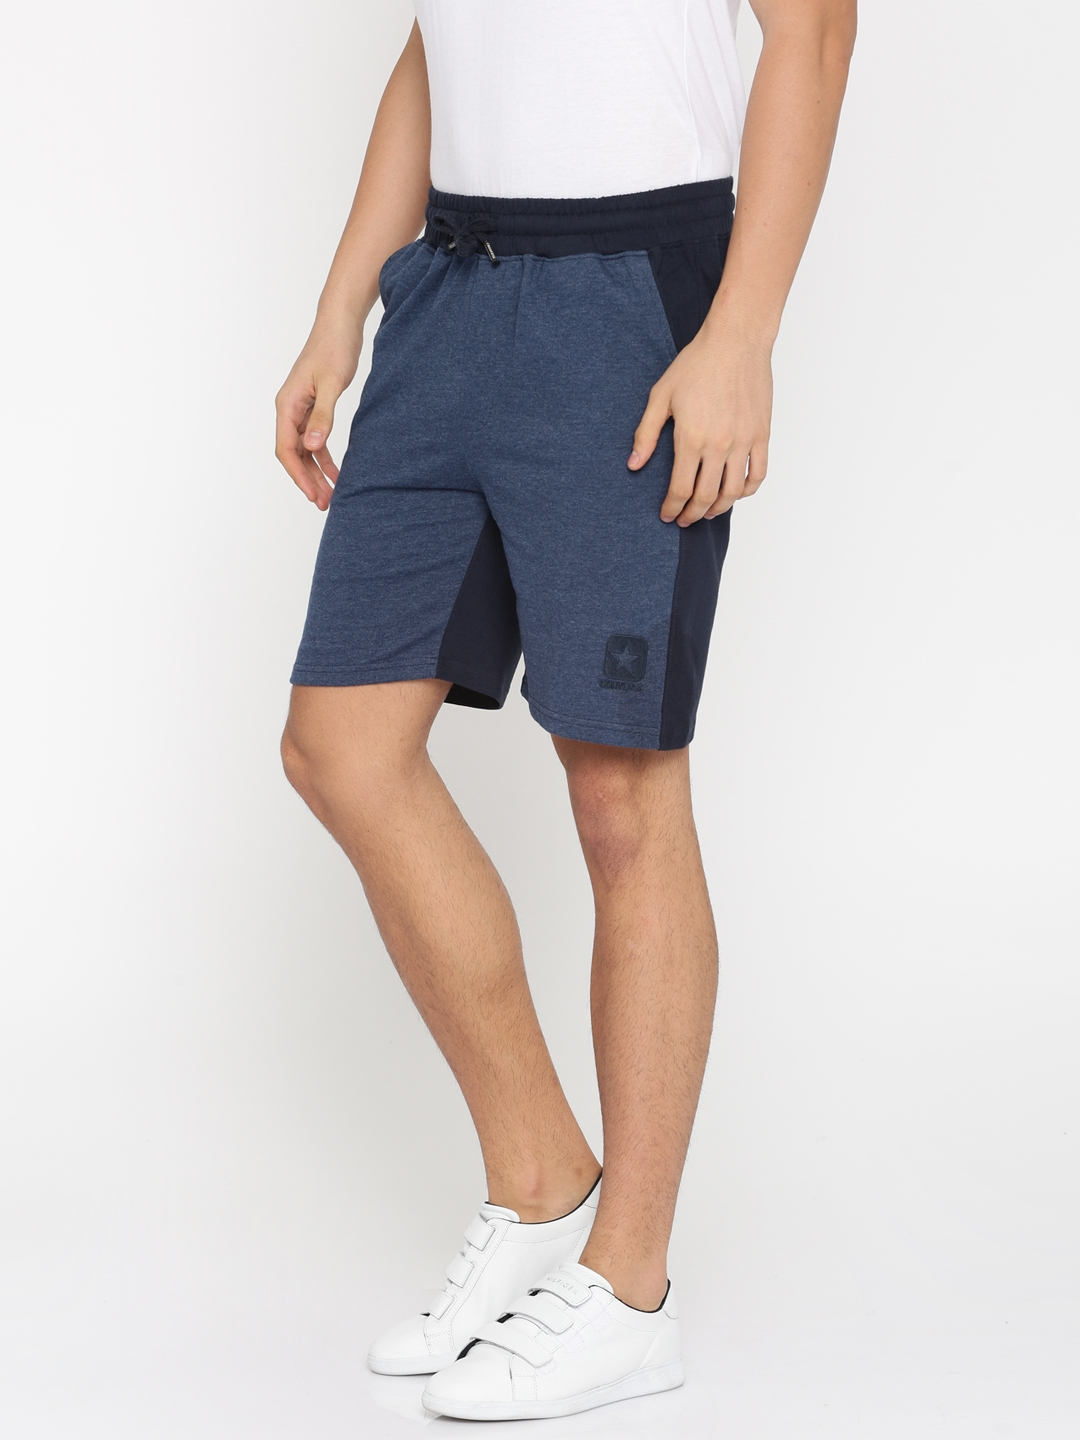 1189cfa5e3ac Buy Converse Men Navy Blue Solid Regular Fit Regular Shorts - Shorts ...